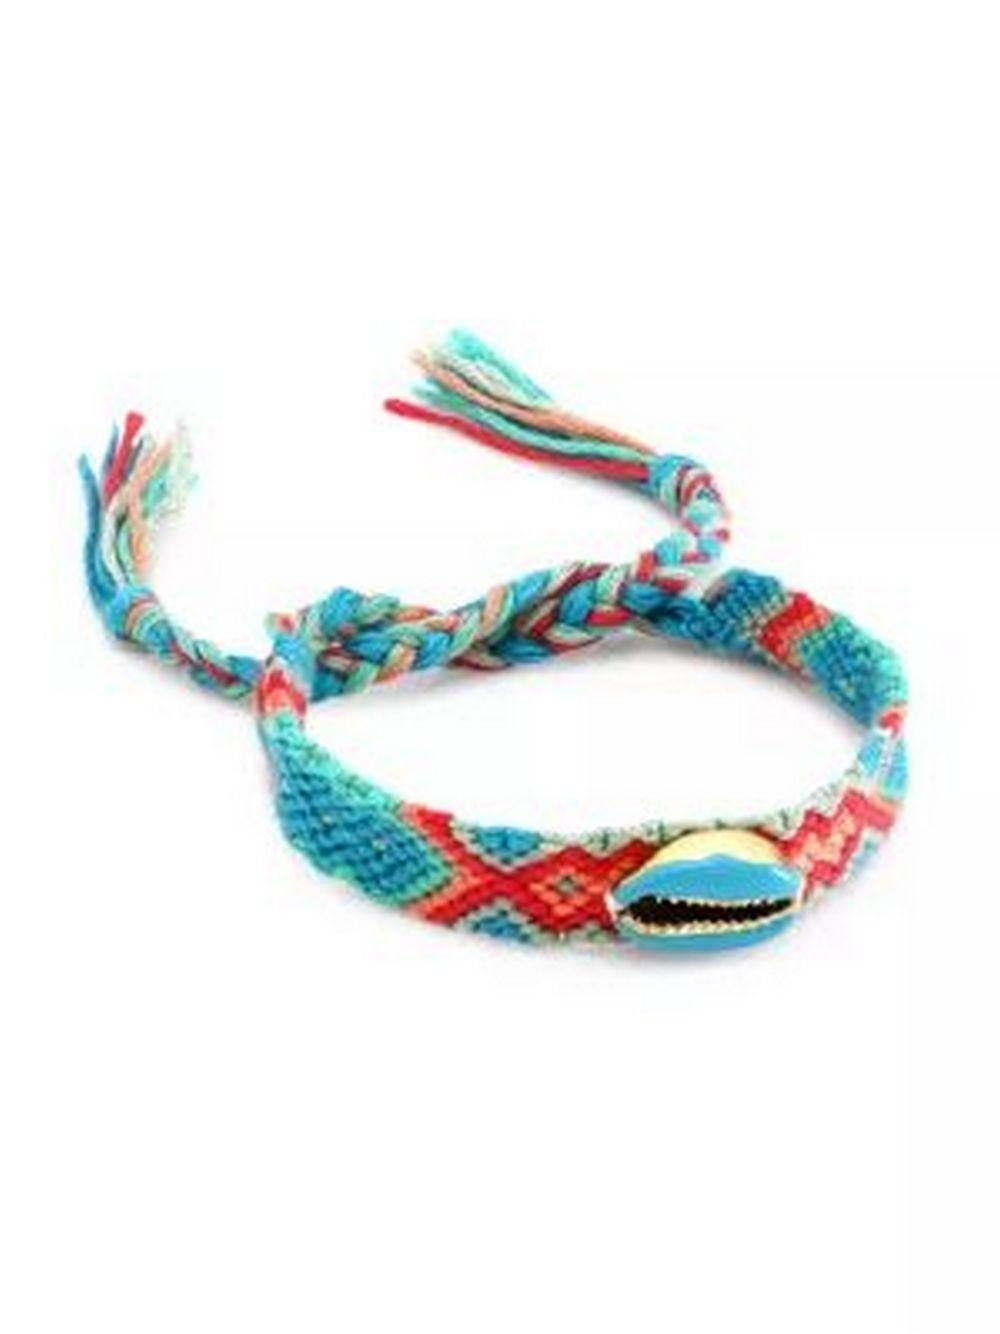 Enamel Friendship Bracelet